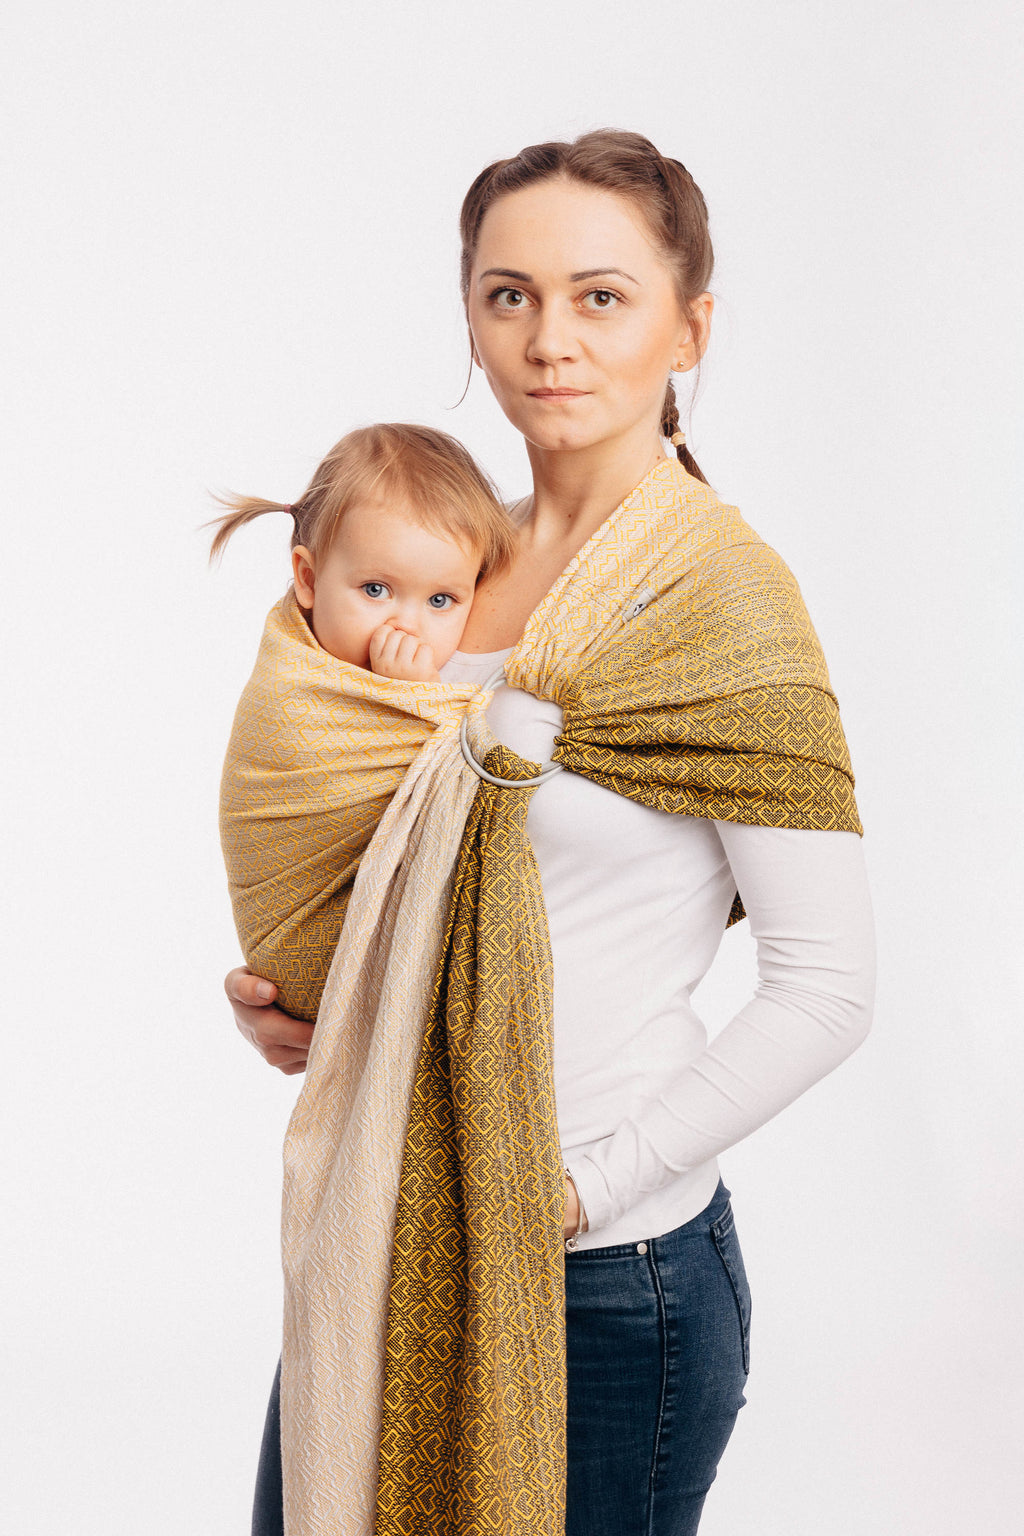 Lenny Lamb Ring Sling - Big Love Ombre Yellow - Slings and Things